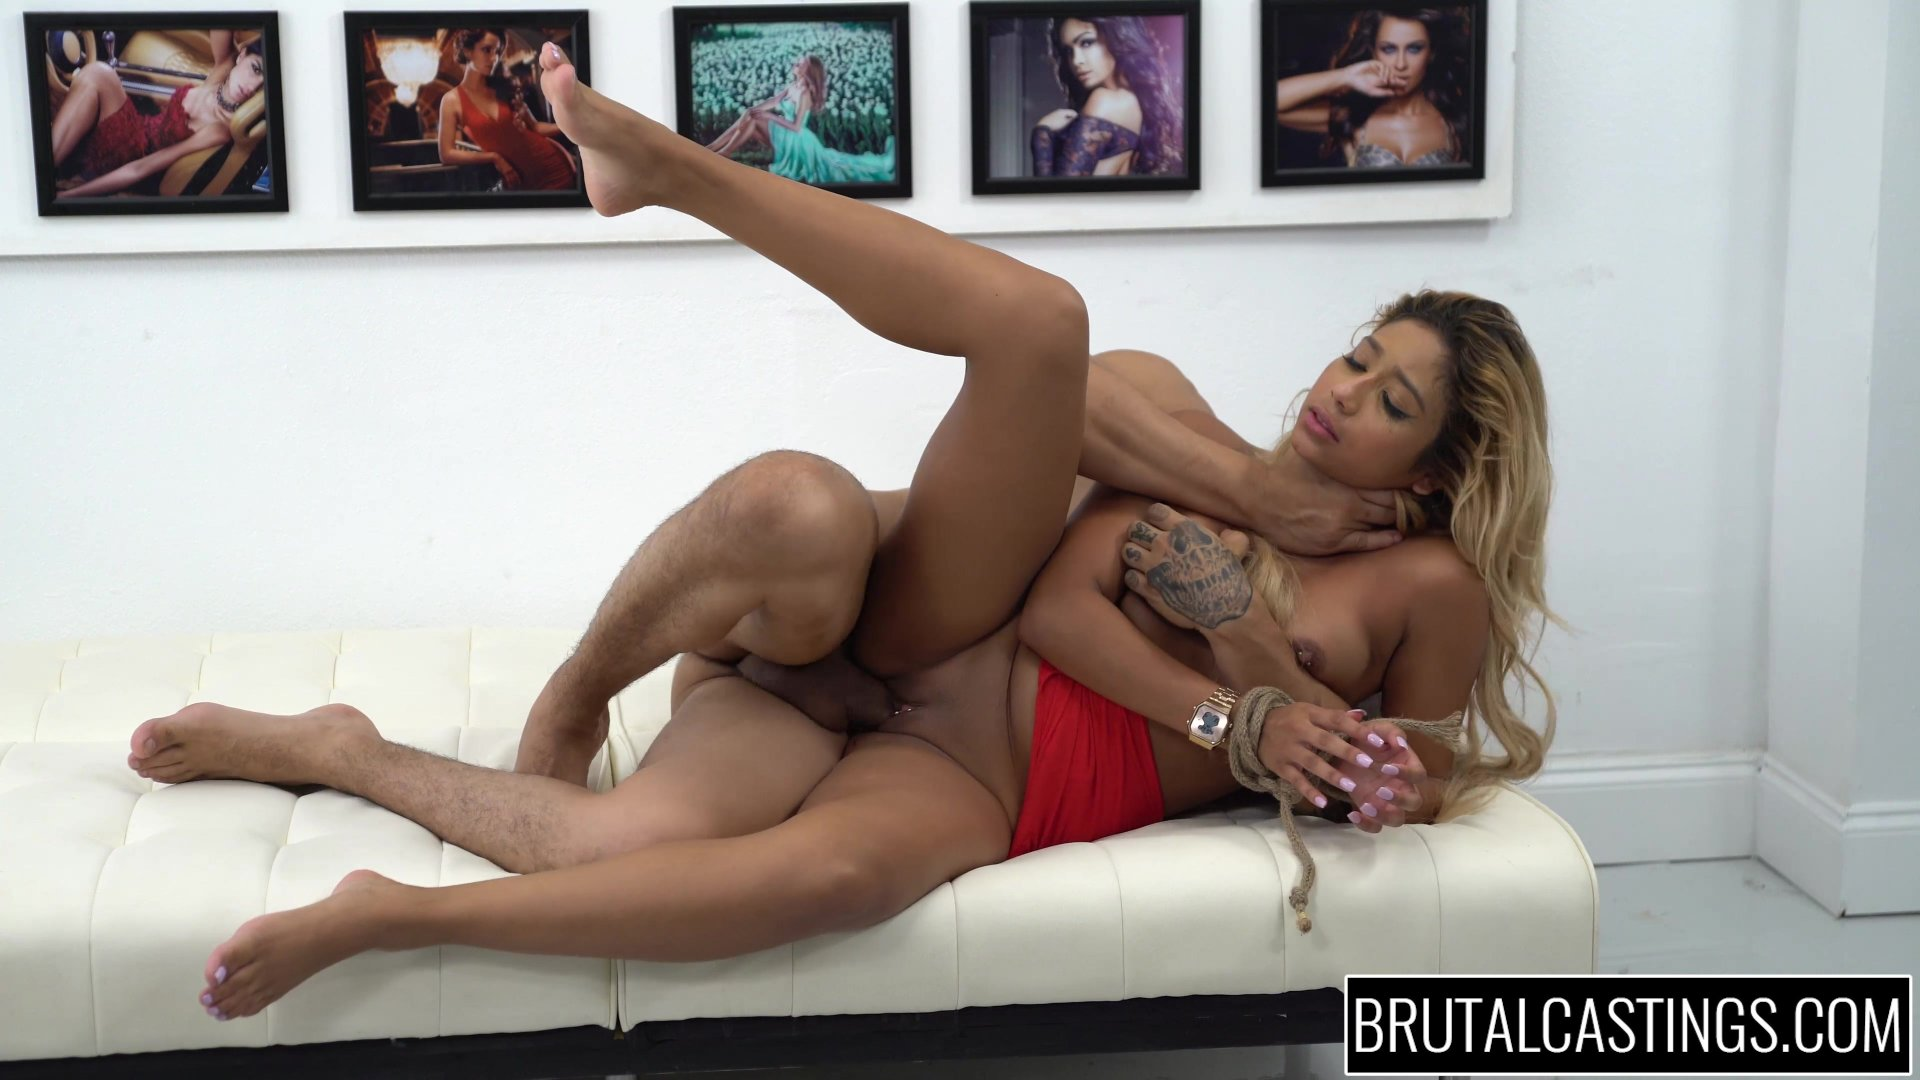 Brutal Castings Ally Berry Videos On Demand  Adult Dvd -1383